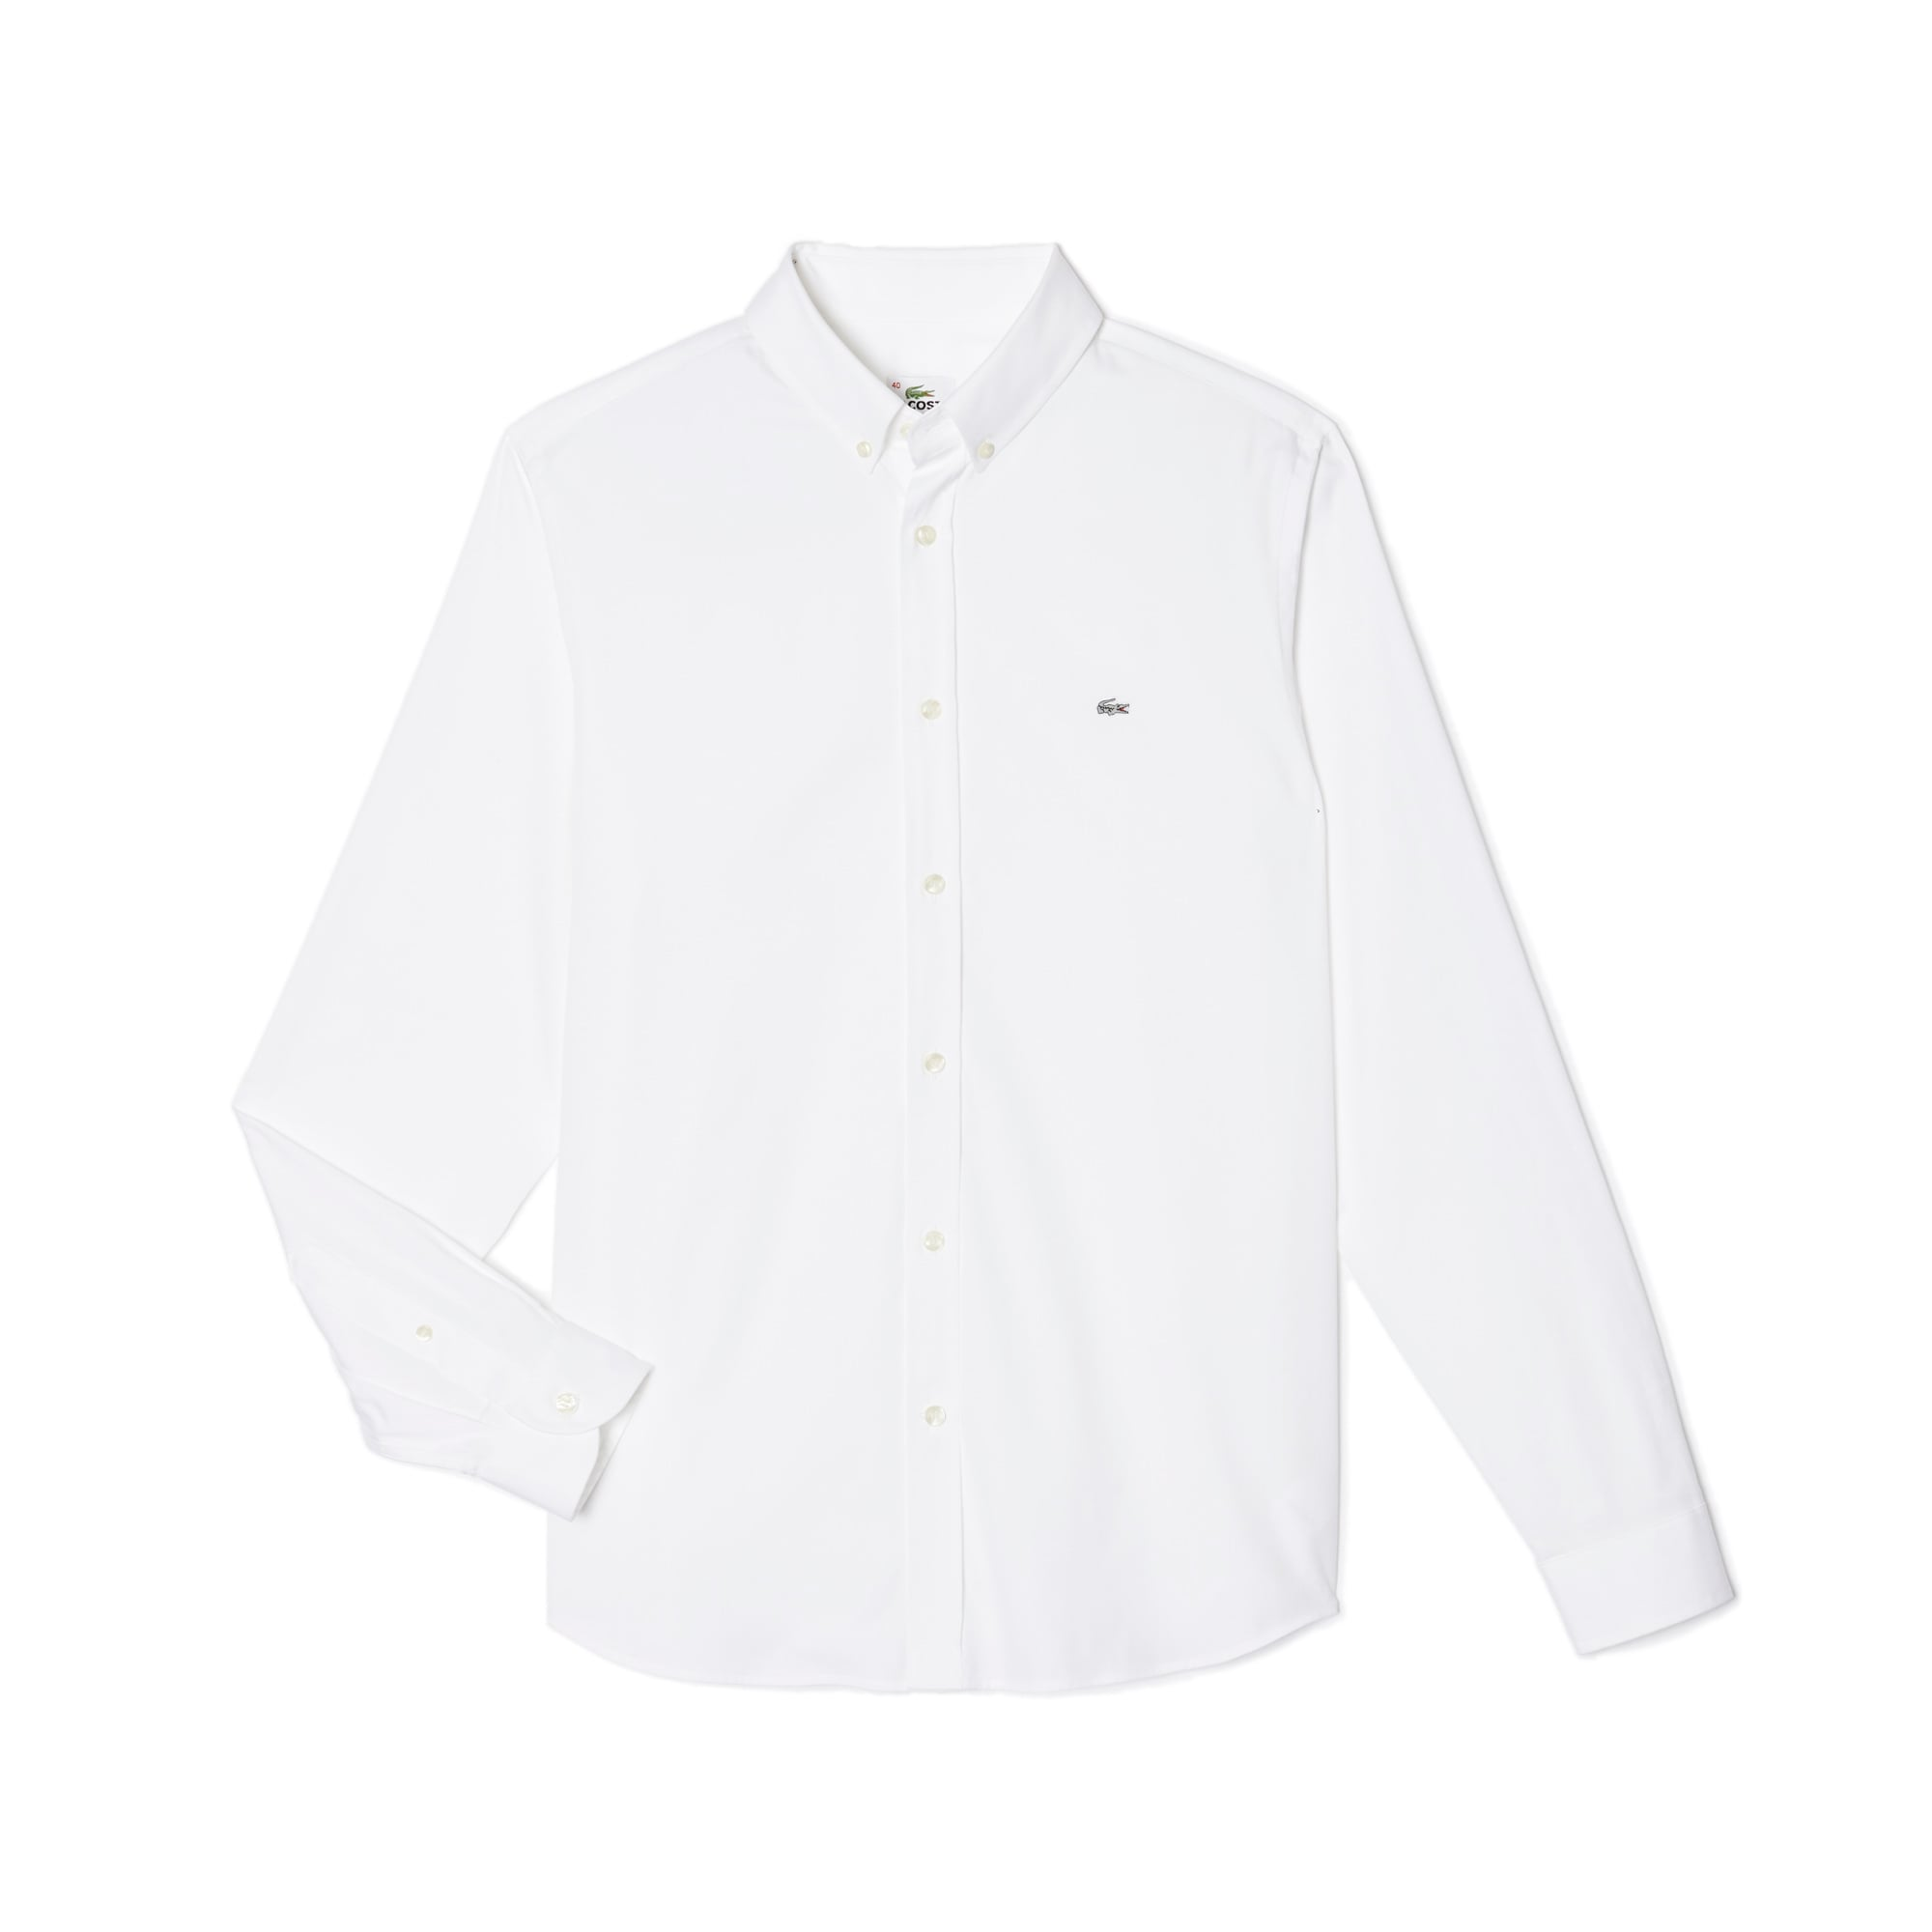 Men's Pinpoint Shirt